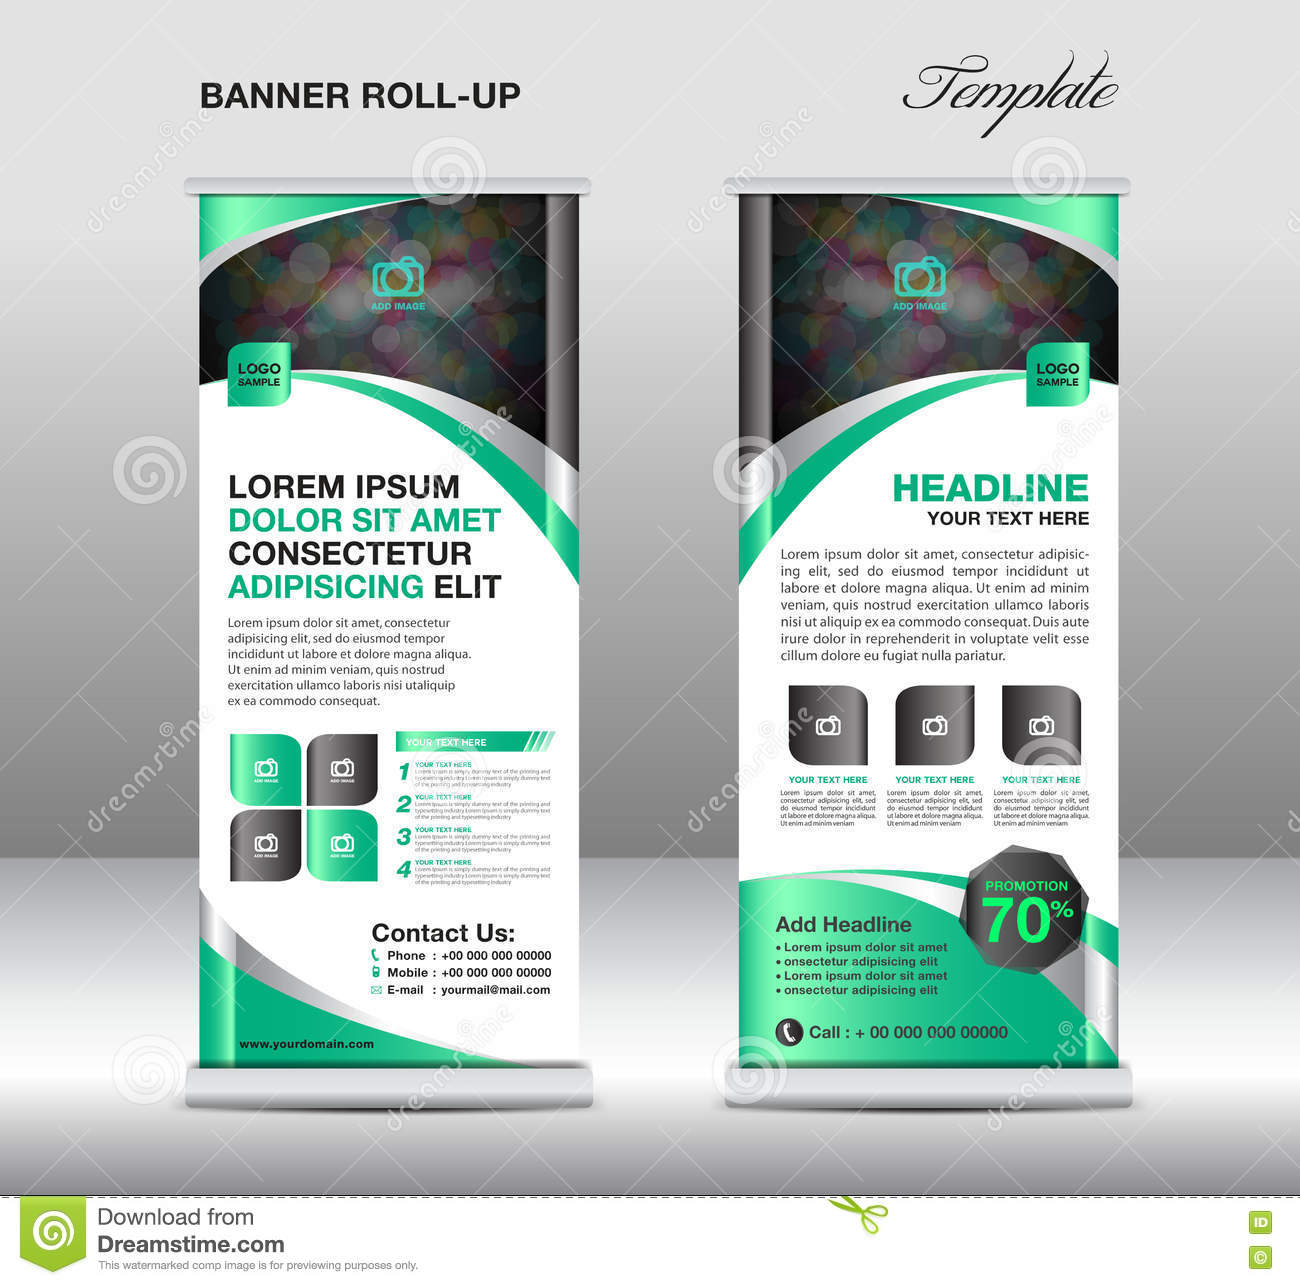 Roll up banner stand template stand designbanner template gre roll up banner stand template stand designbanner template gre pronofoot35fo Choice Image